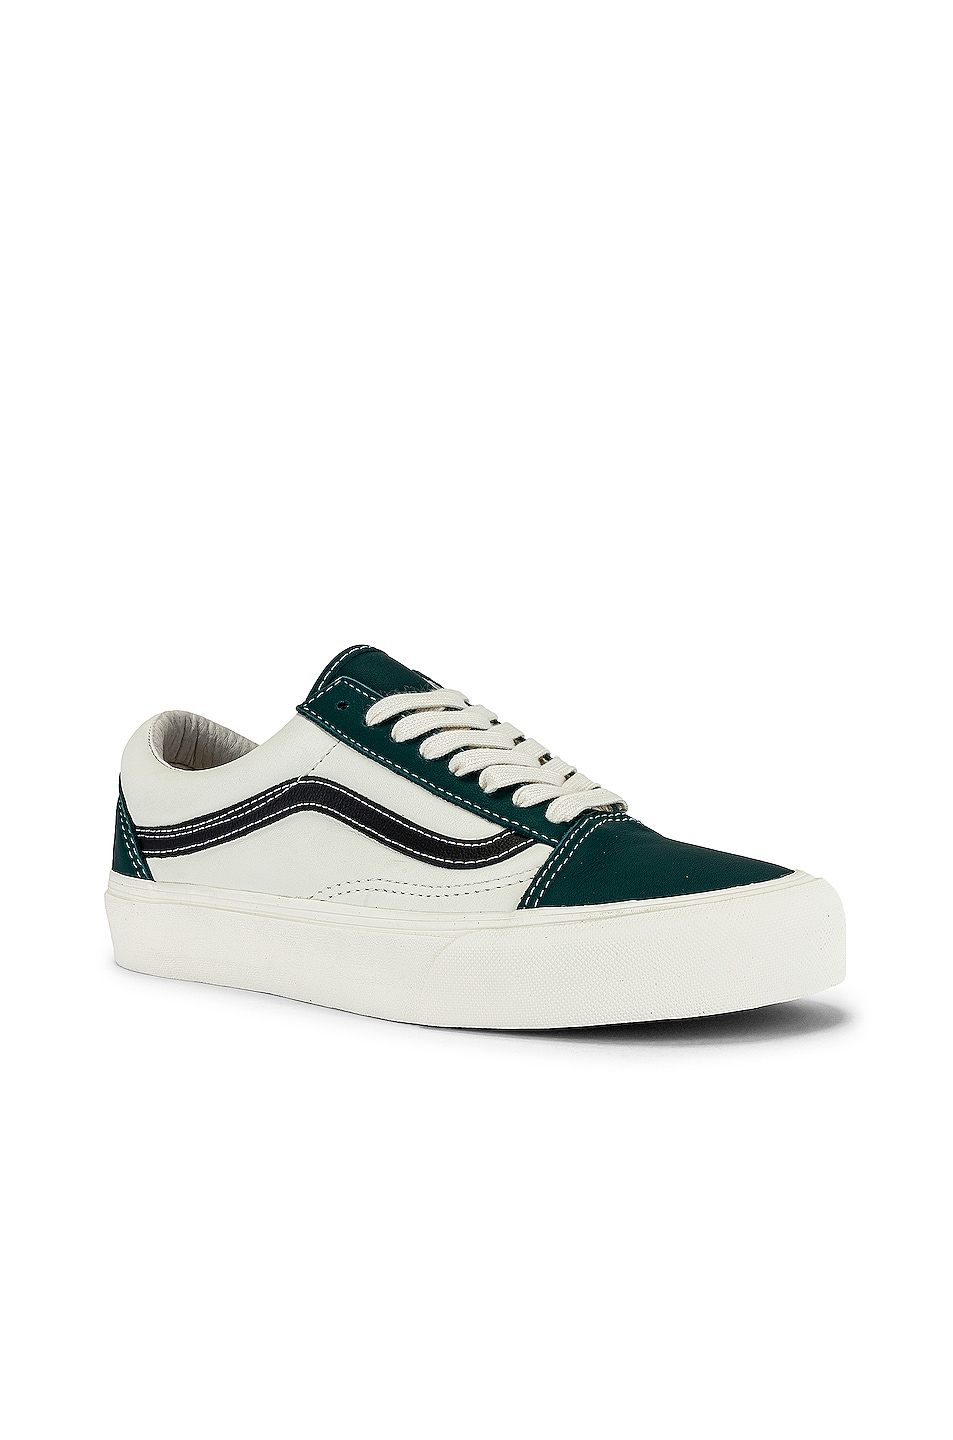 Image 1 of Vans Vault Old Skool VLT LX in Evergreen & Marshmallow